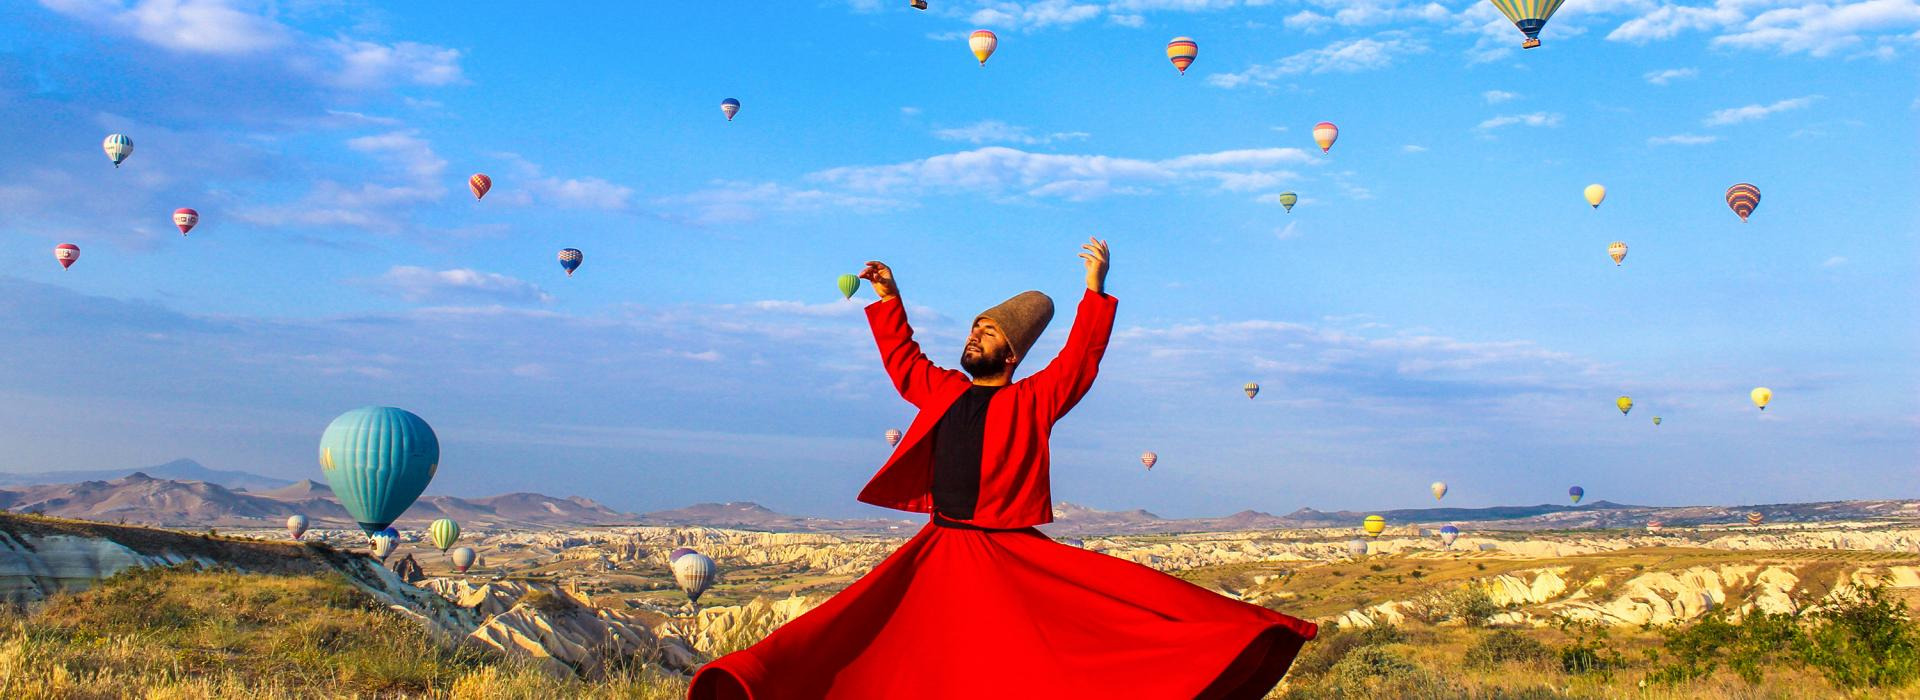 Whirling Dervish in Cappadocia